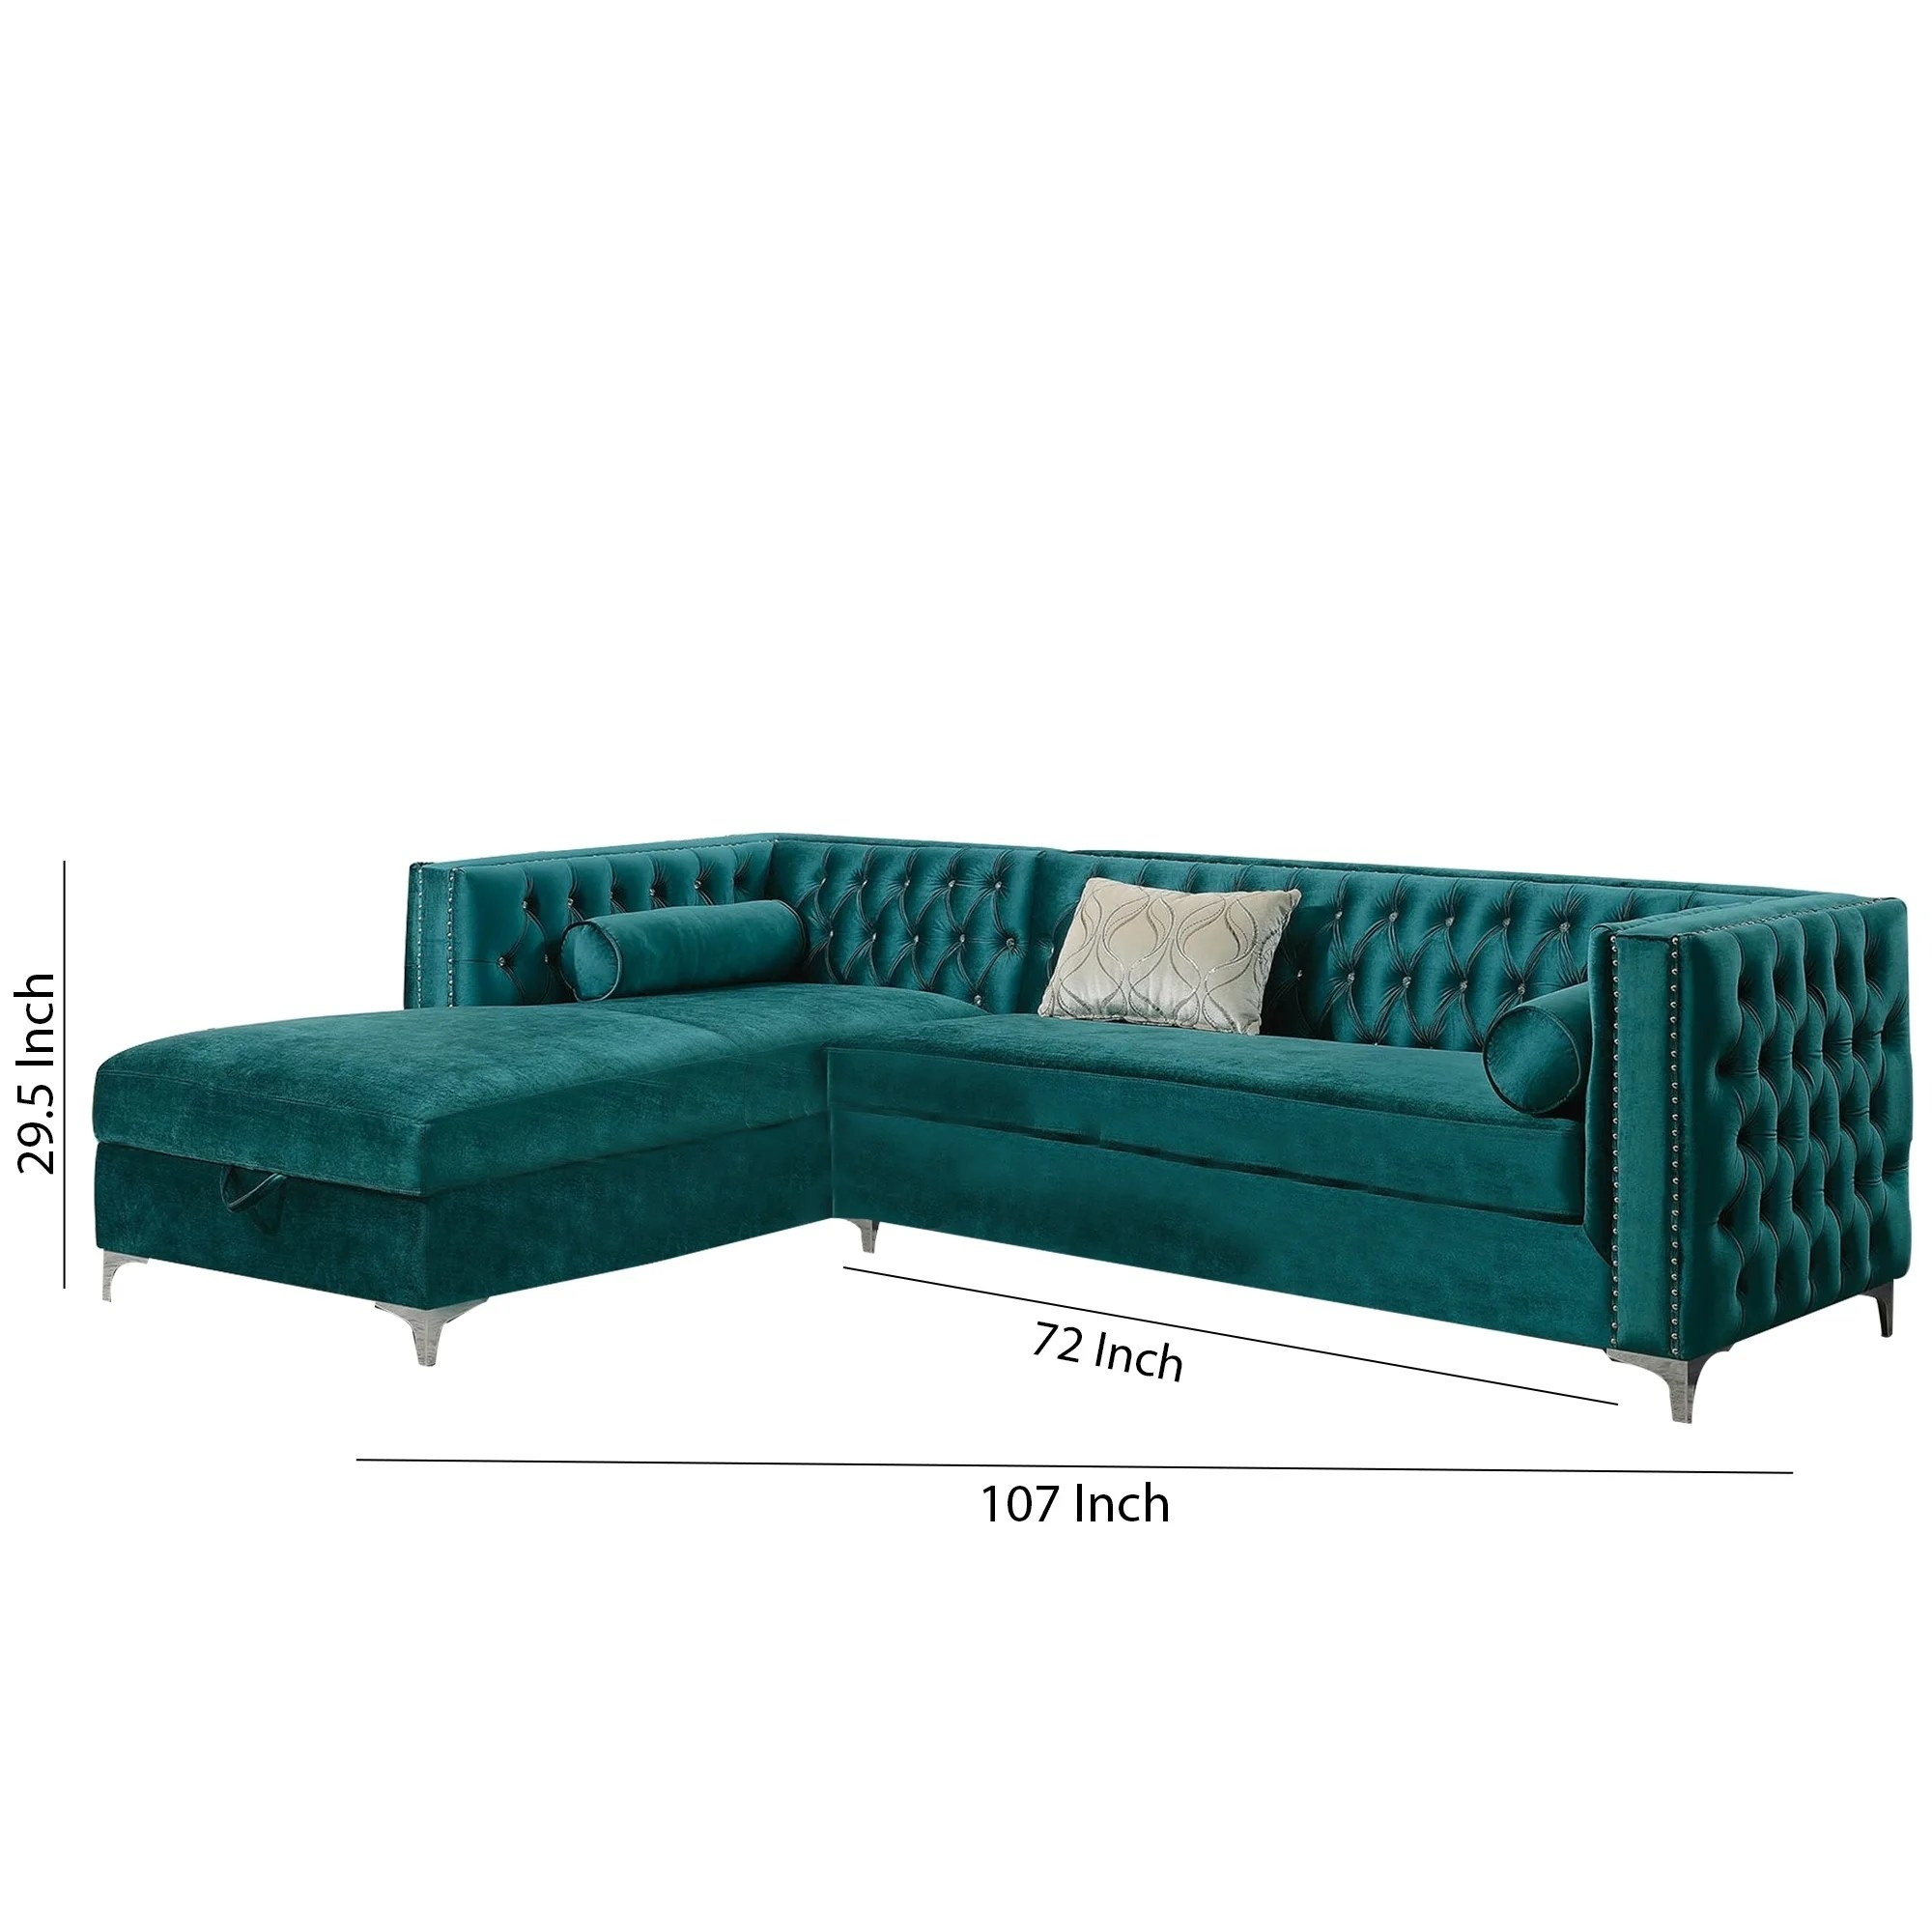 velvet upholstered 2 piece sectional sofa with tufted details teal blue